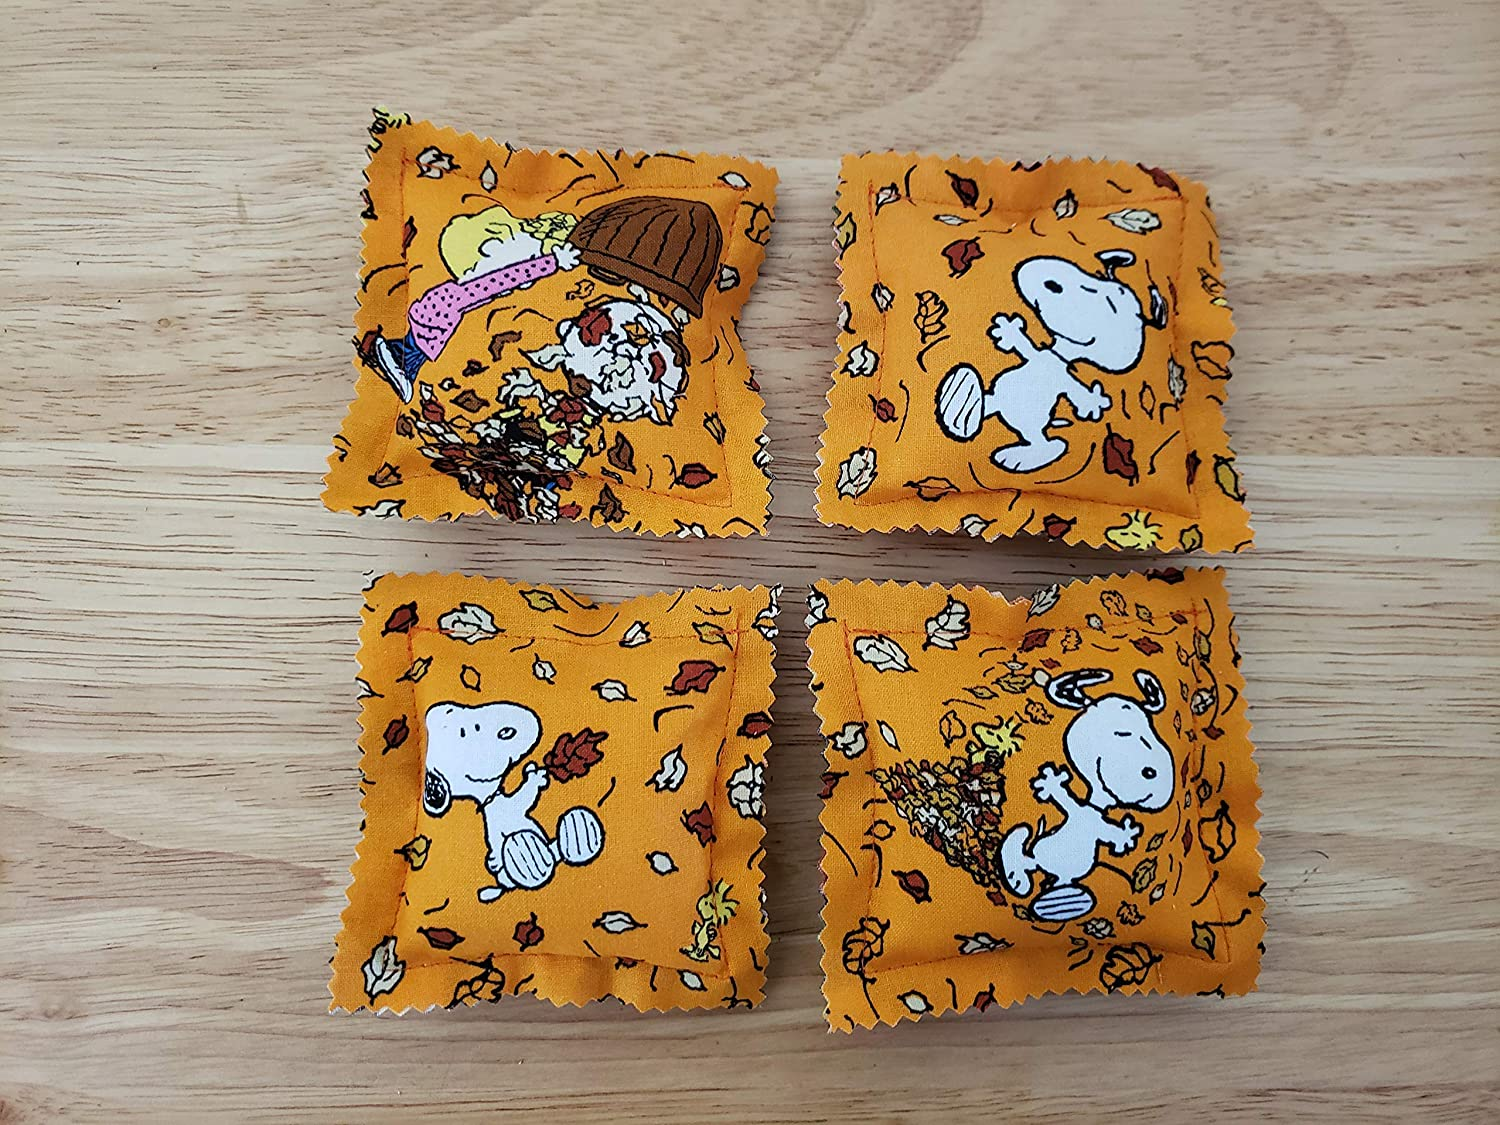 Catnip Ravioli Pillow Toys, Fall, Autumn, Made with Charlie Brown, Snoopy, Woodstock, Fabric, Peanuts, Cat, Cats, Kittens, Set of 4